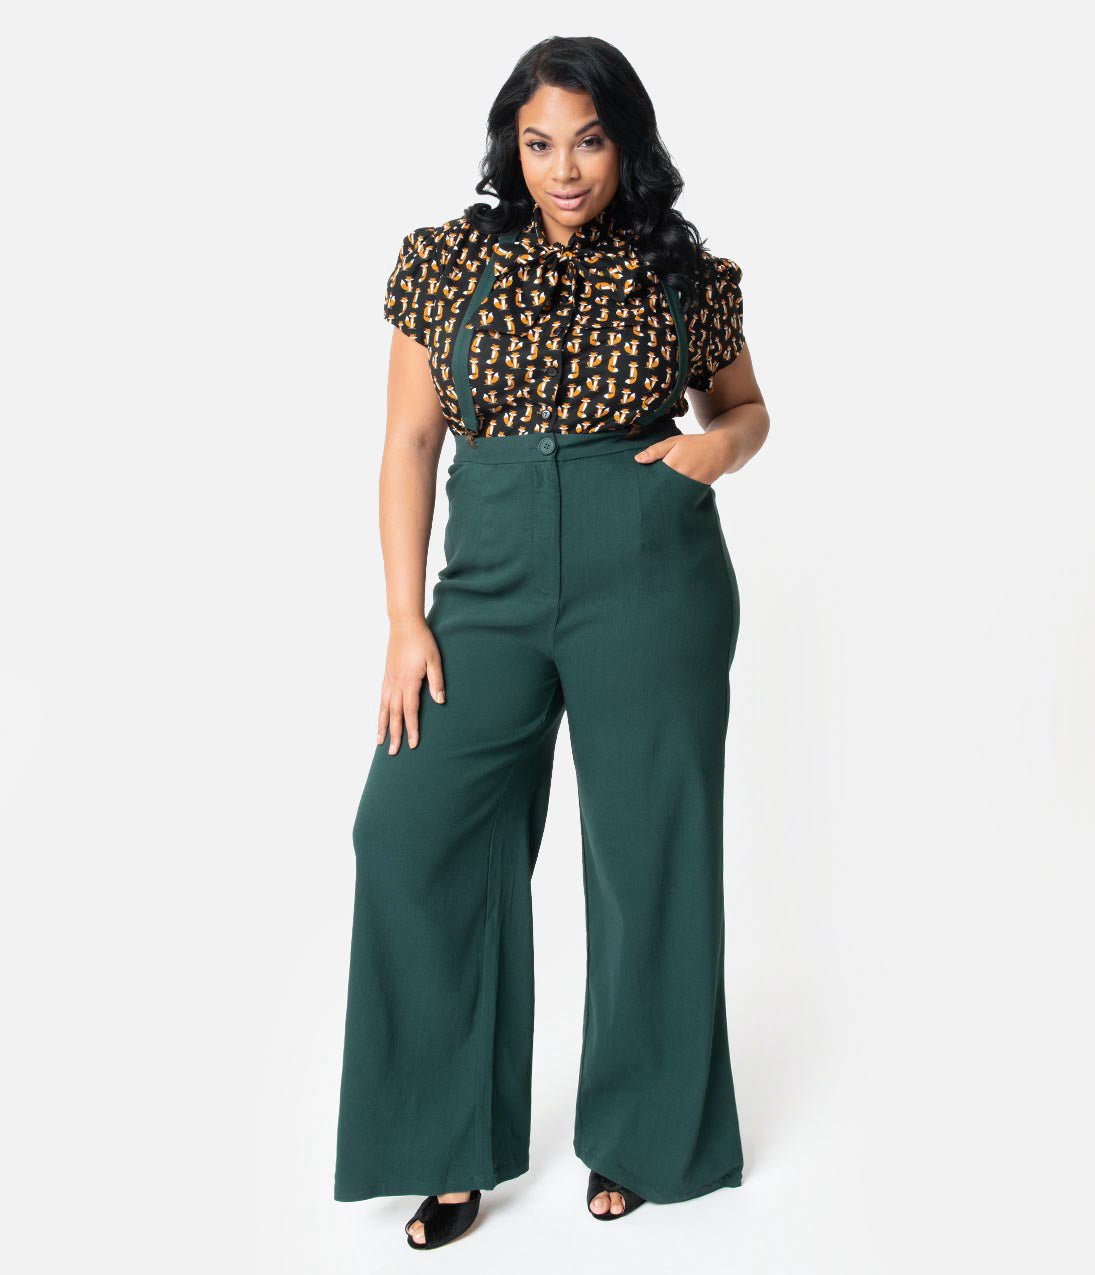 1940s Clothing Collectif Plus Size 1940S Style Emerald Green High Waist Glinda Suspender Pants $58.00 AT vintagedancer.com